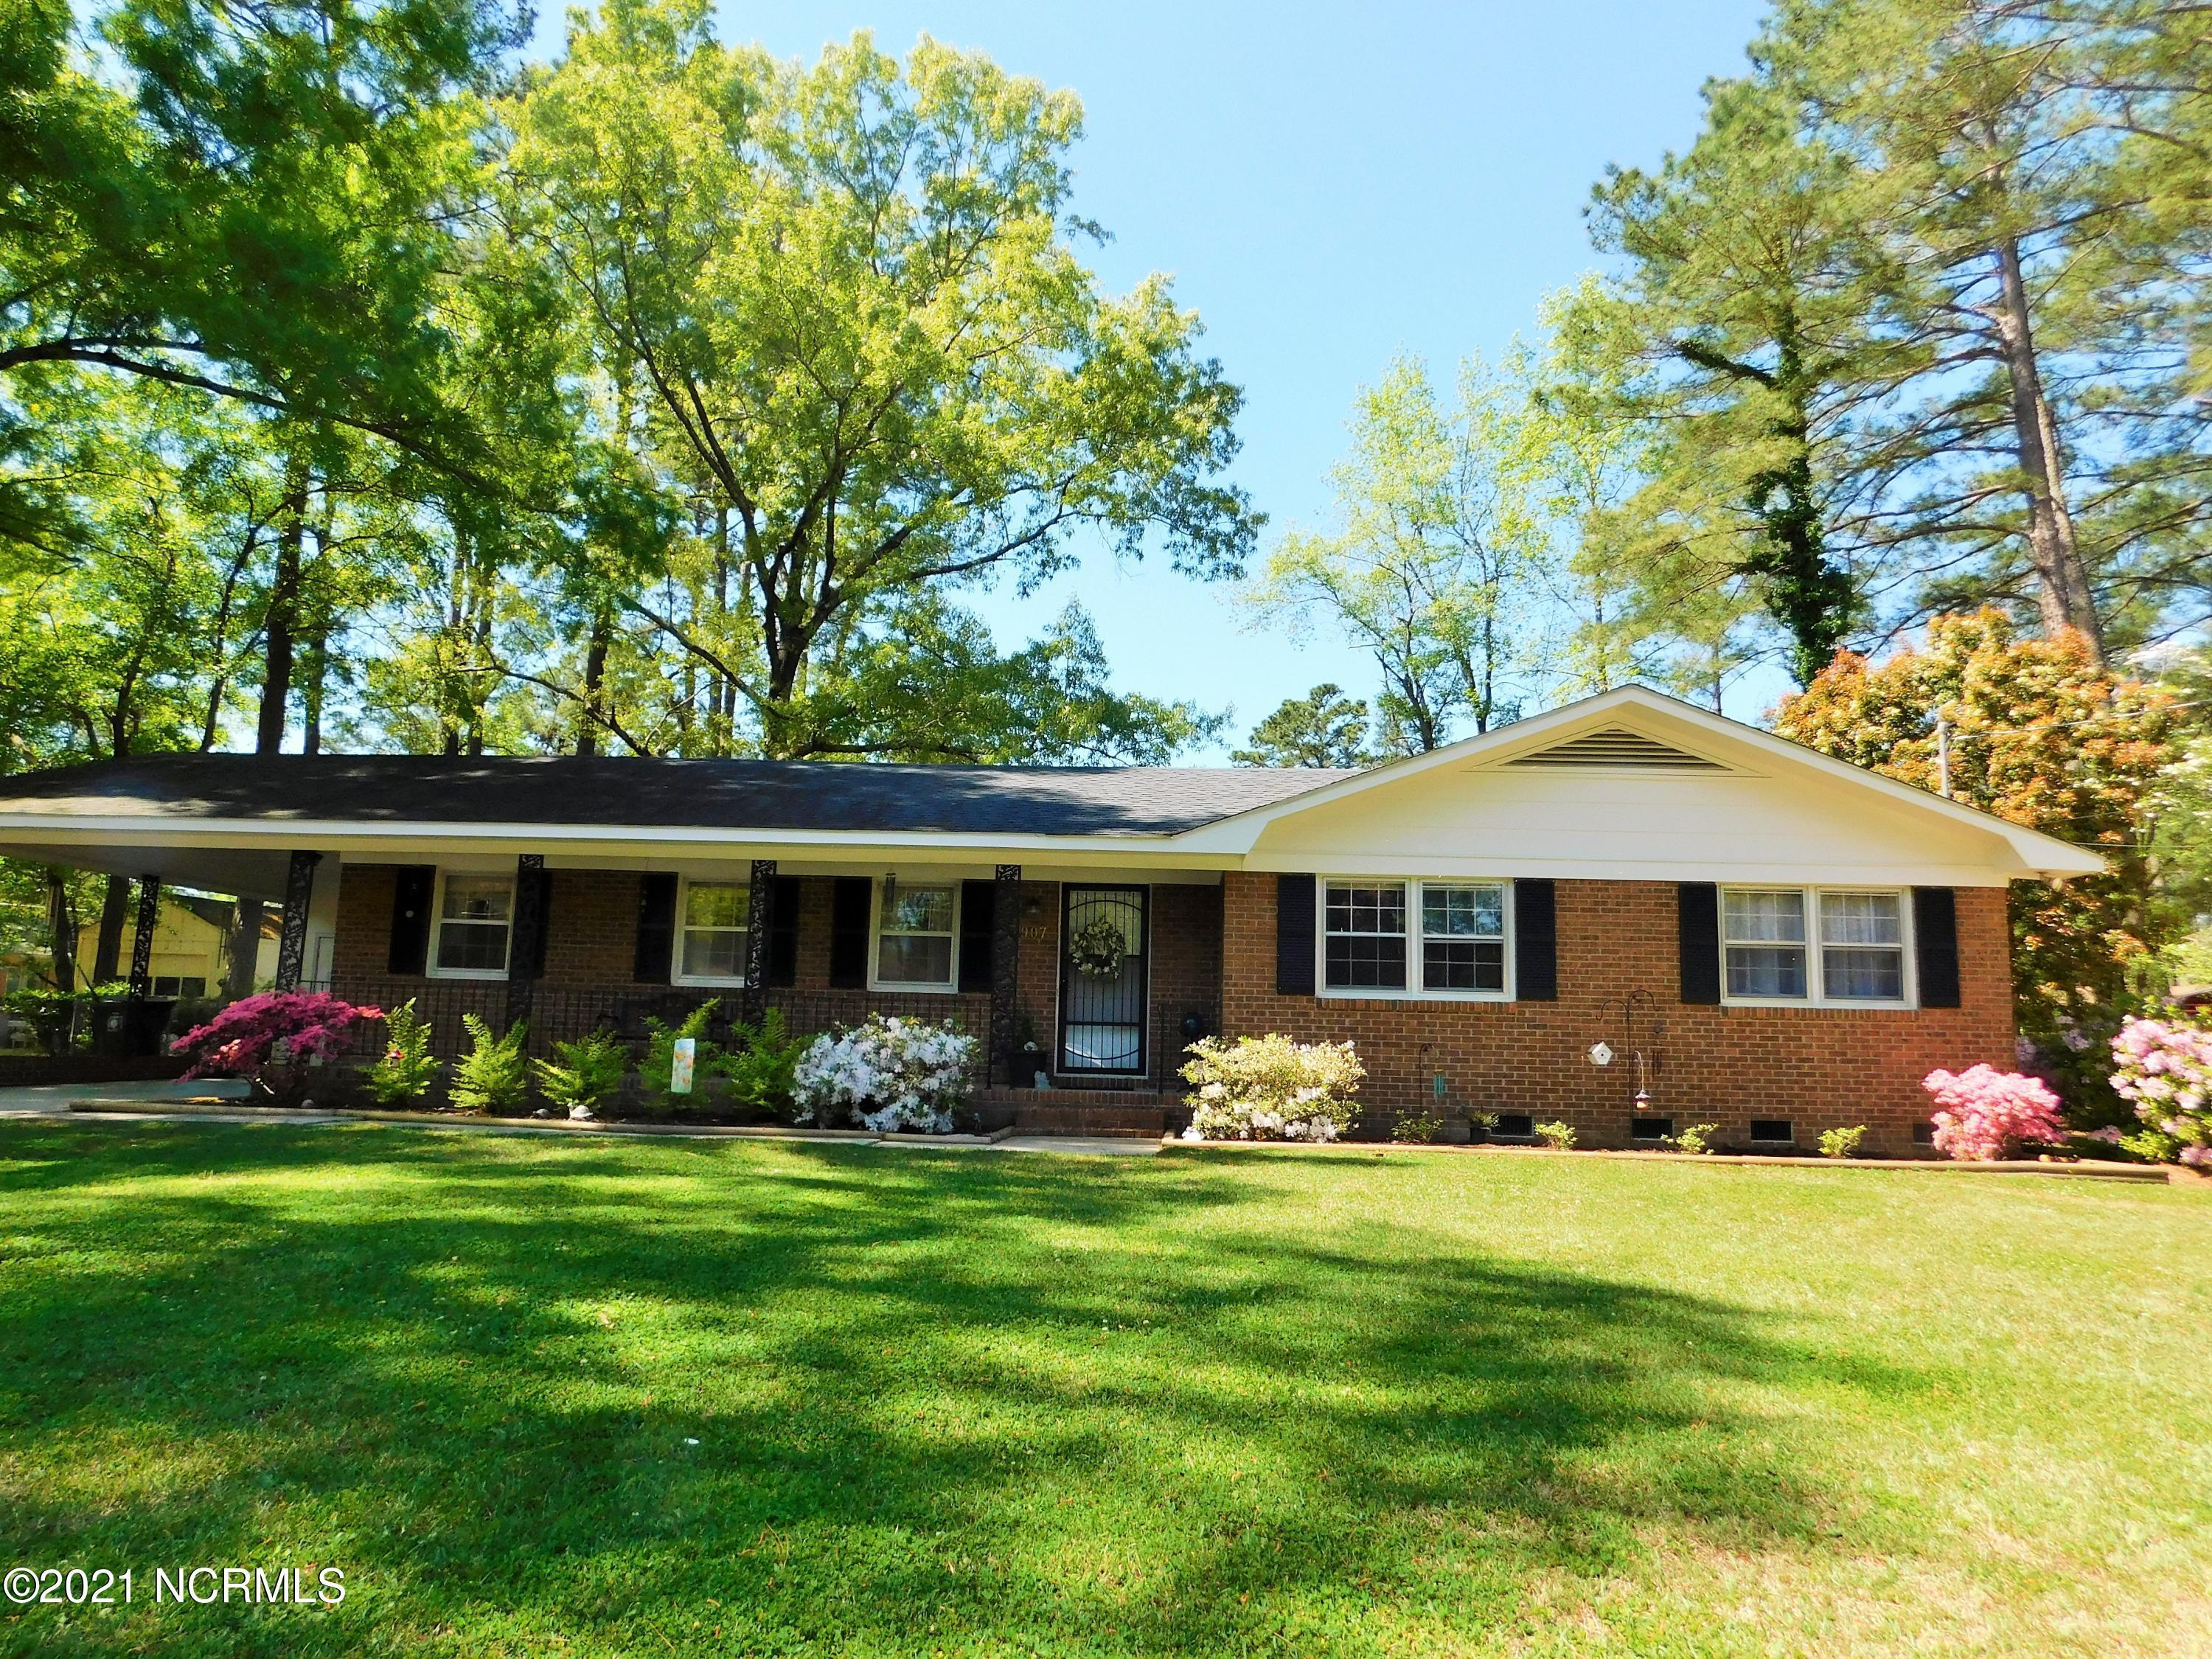 907 Highland Drive, 100266138, Laurinburg, Single-Family Home,  for sale, Realty World Graham/Grubbs & Associates